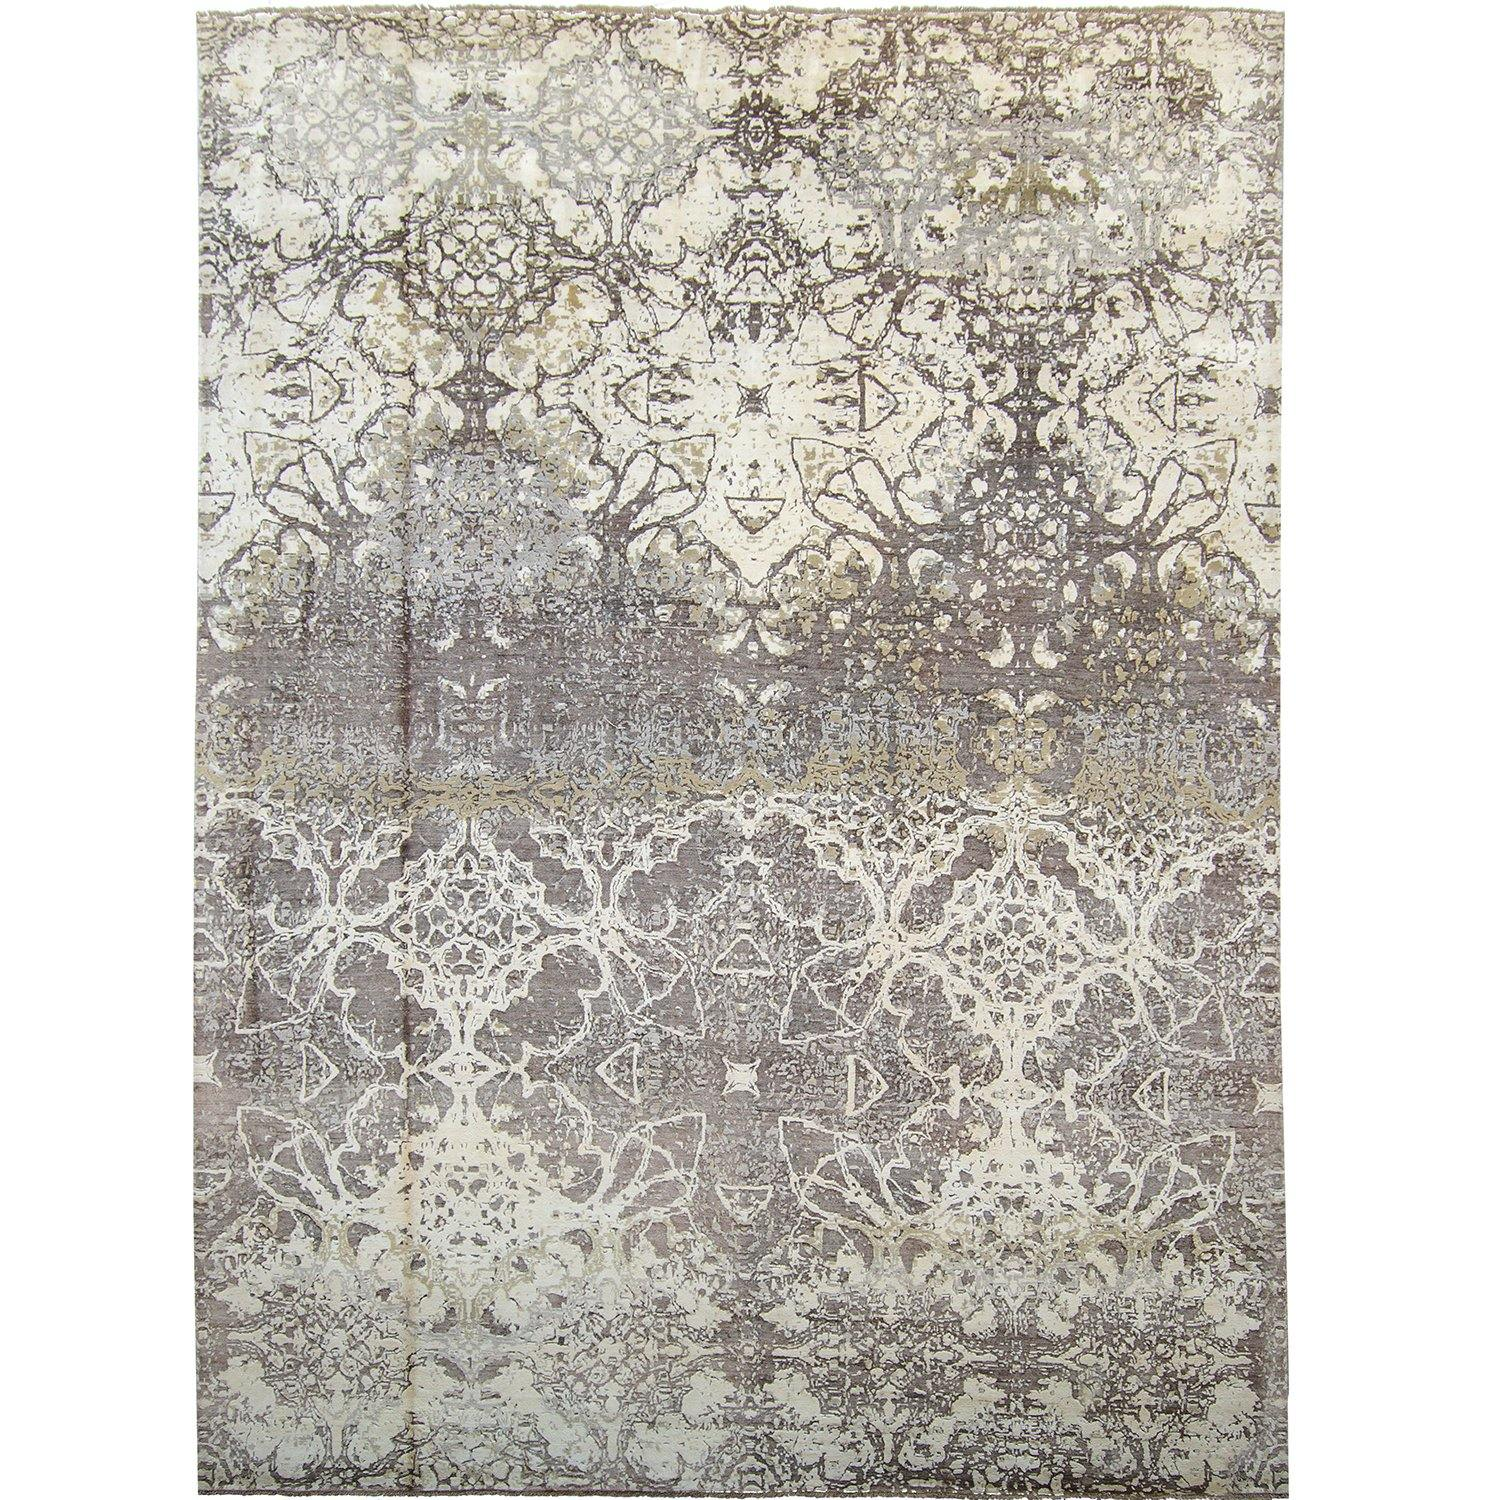 Fine Contemporary Hand-knotted NZ Wool Rug 278cm x 370cm Persian-Rug | House-of-Haghi | NewMarket | Auckland | NZ | Handmade Persian Rugs | Hand Knotted Persian Rugs